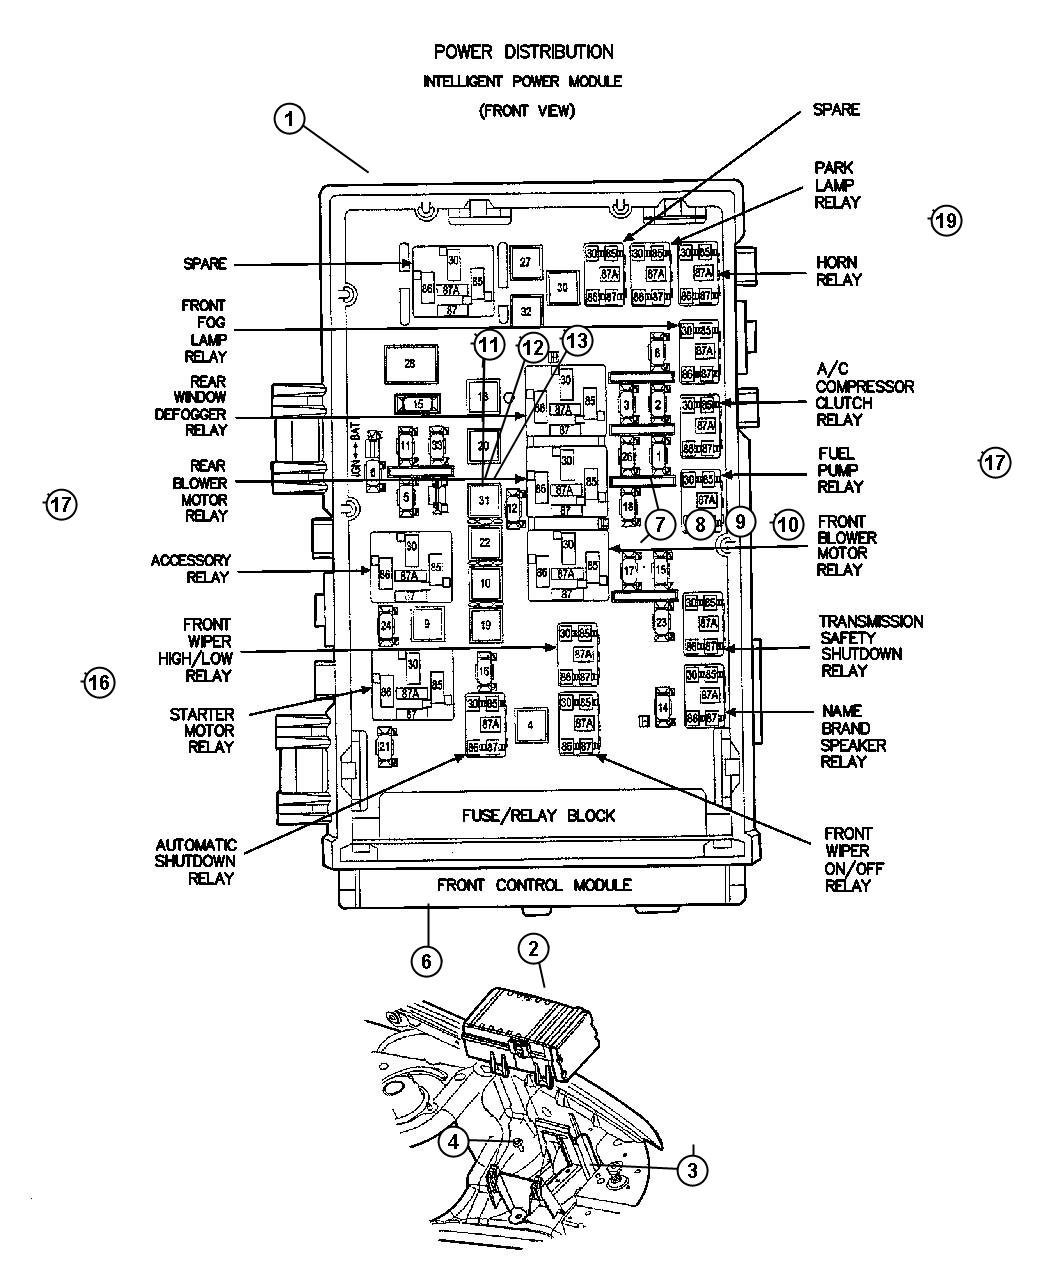 Fuse Diagram For 2002 Chrysler Sebring Convertible additionally P 0900c1528003c502 further P 0900c1528003c502 besides Coolant Temp Sensor Location 213371 likewise 5jbwl Dodge Ram 1500 4x4 2008 Dodge Ram 1500 Single Cab. on dodge caravan front control module